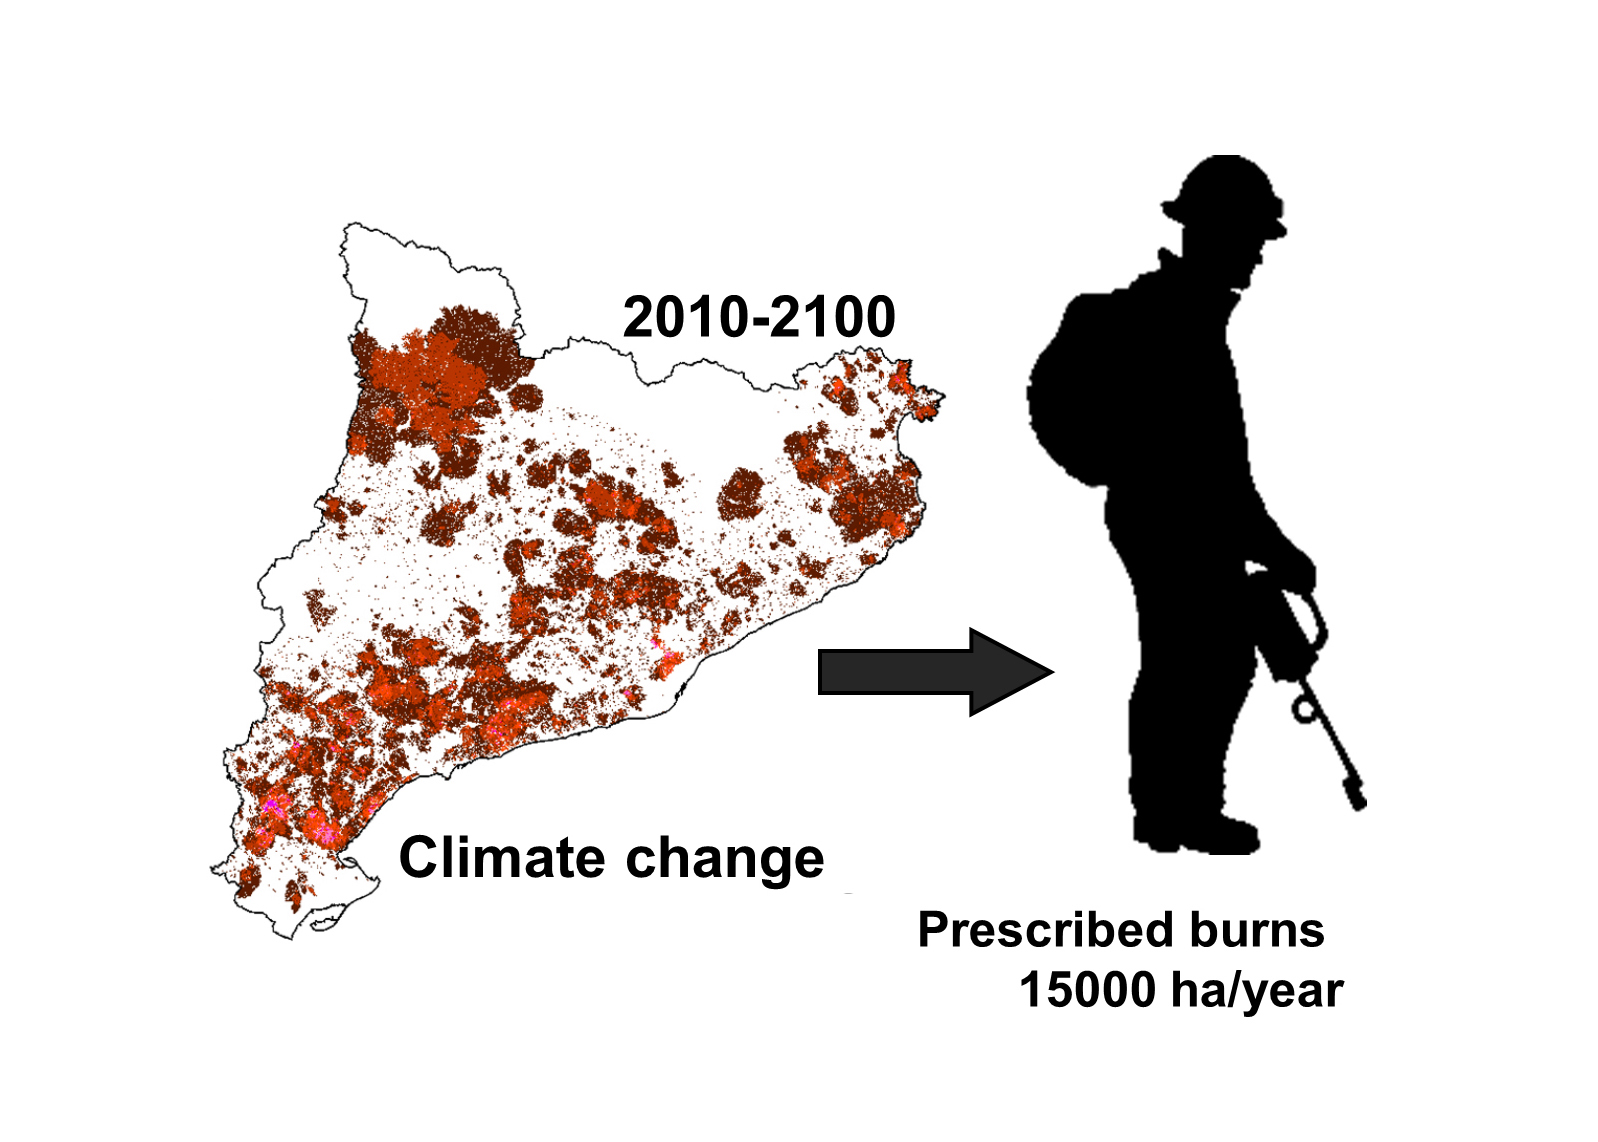 New article: Adapting prescribed burns to future climate change in Mediterranean landscapes